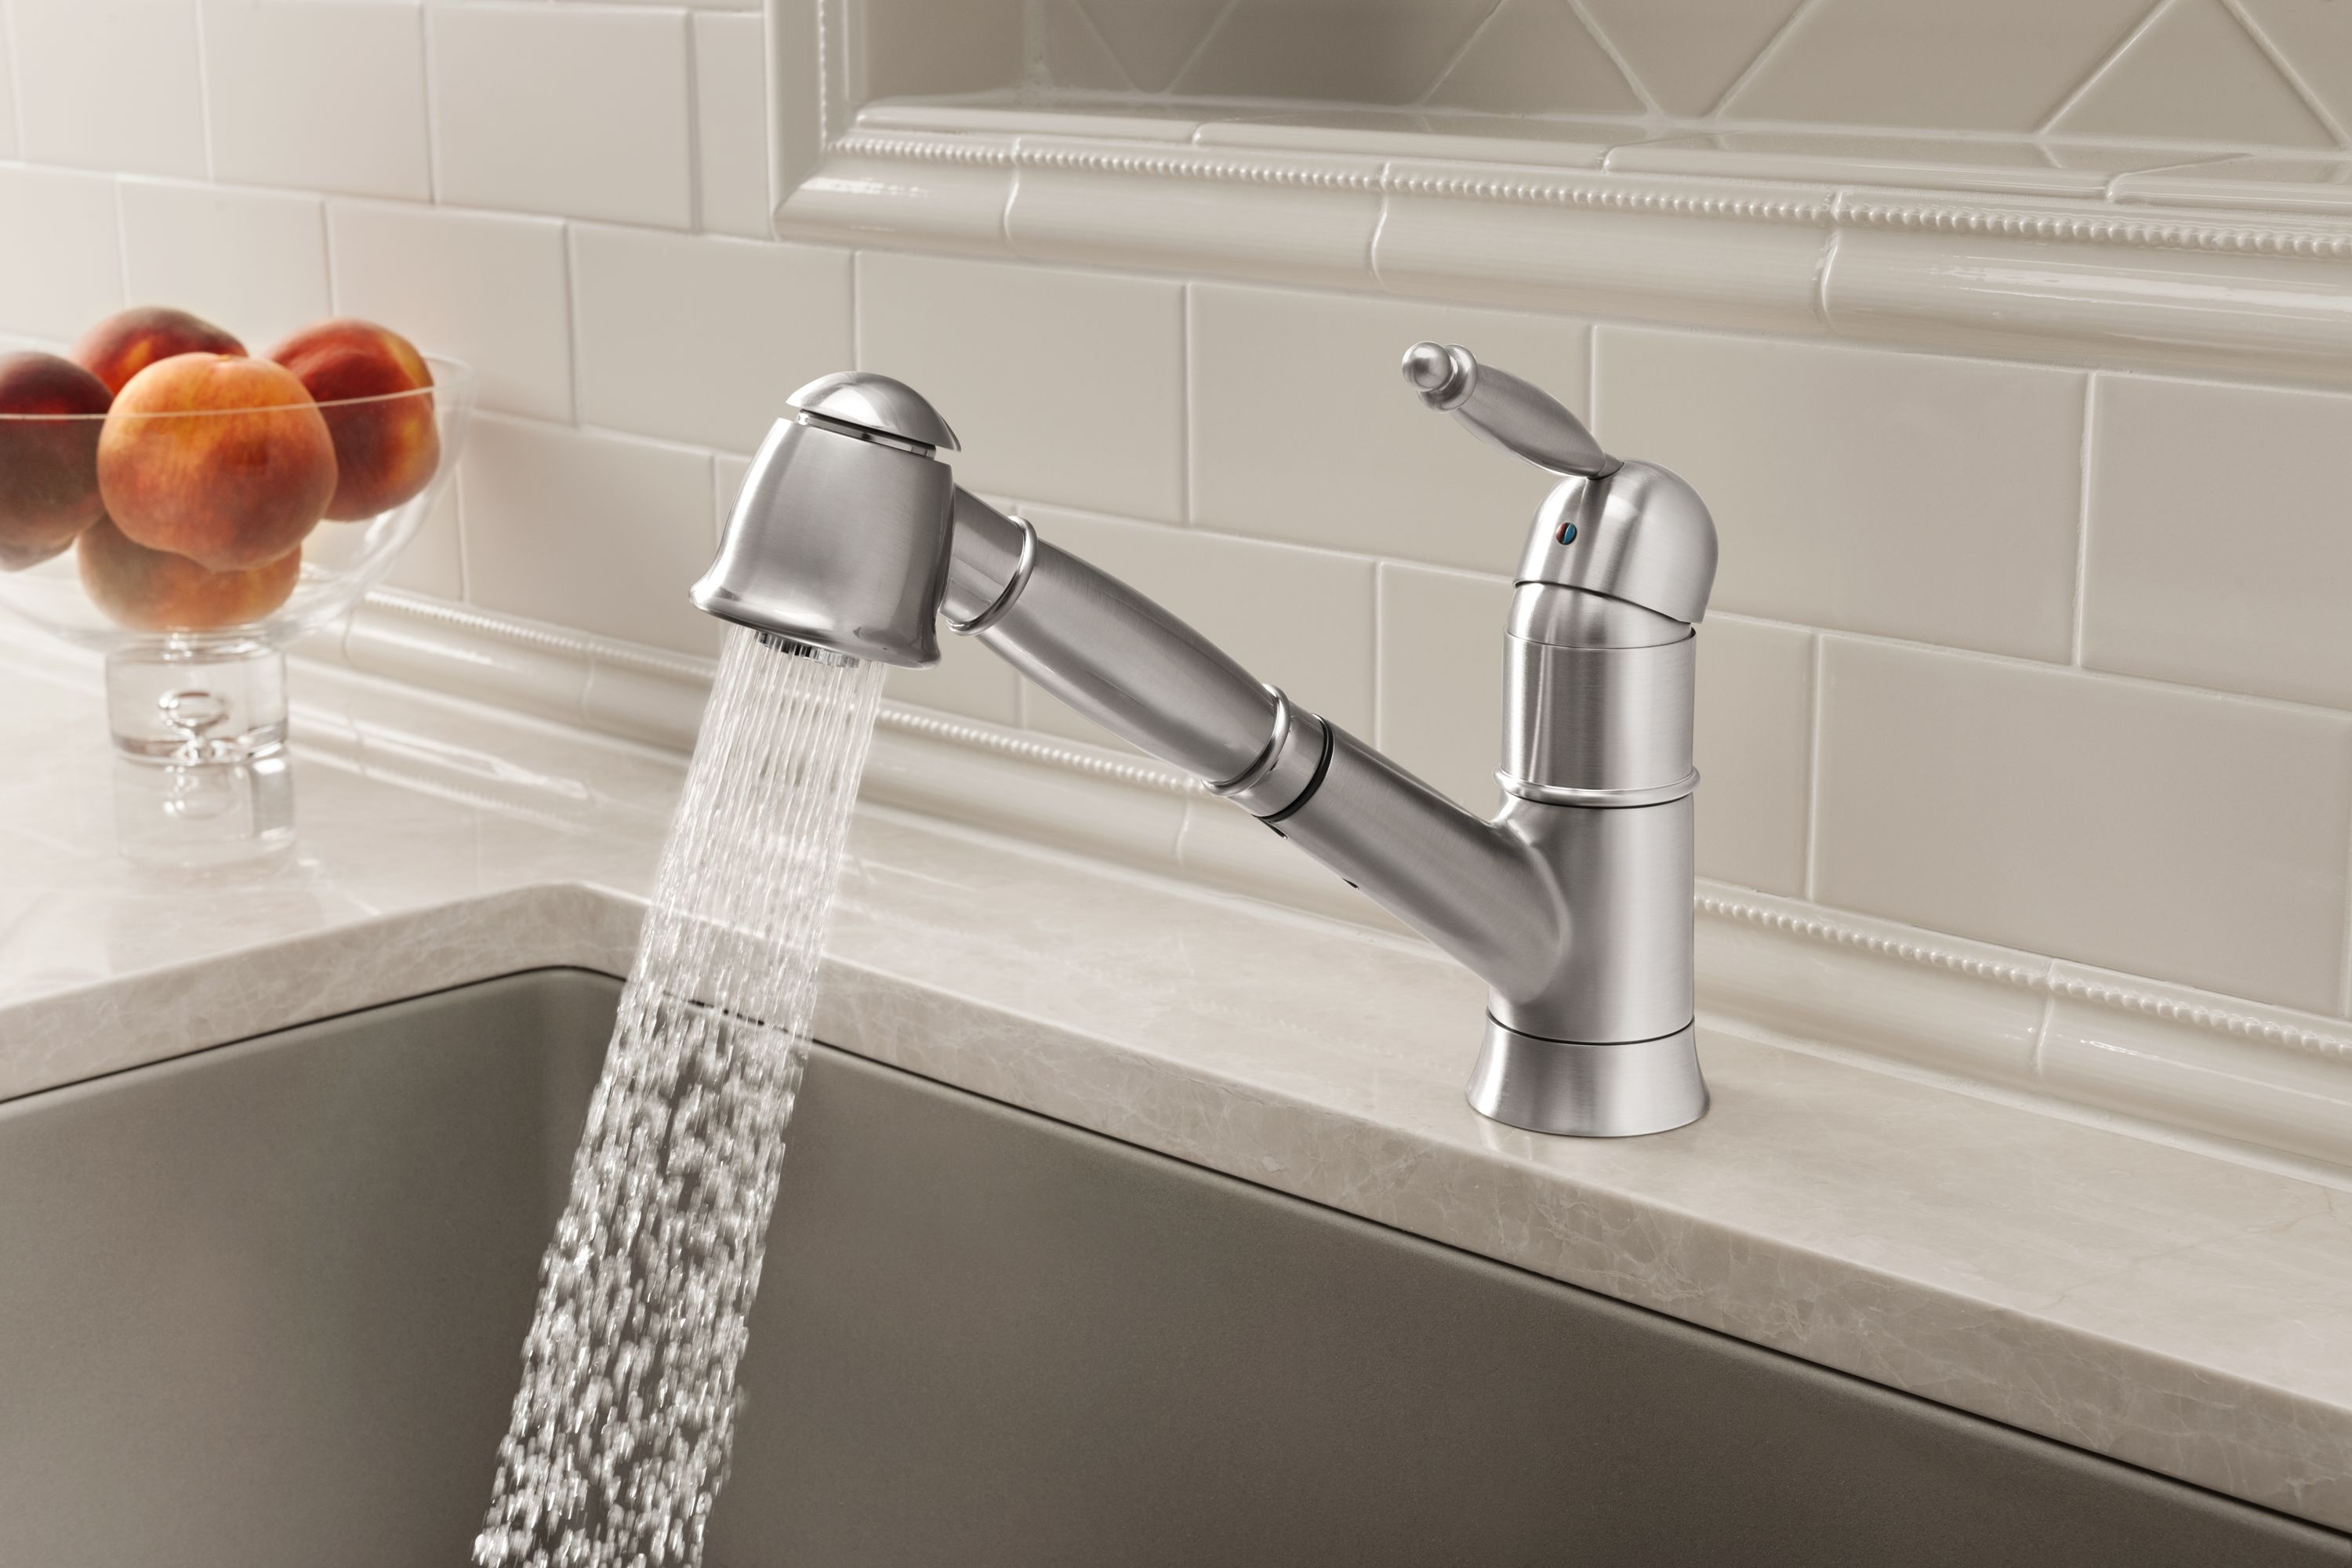 with pro high kitchens colony handle spout faucet kitchen faucets standard arc two swivel american